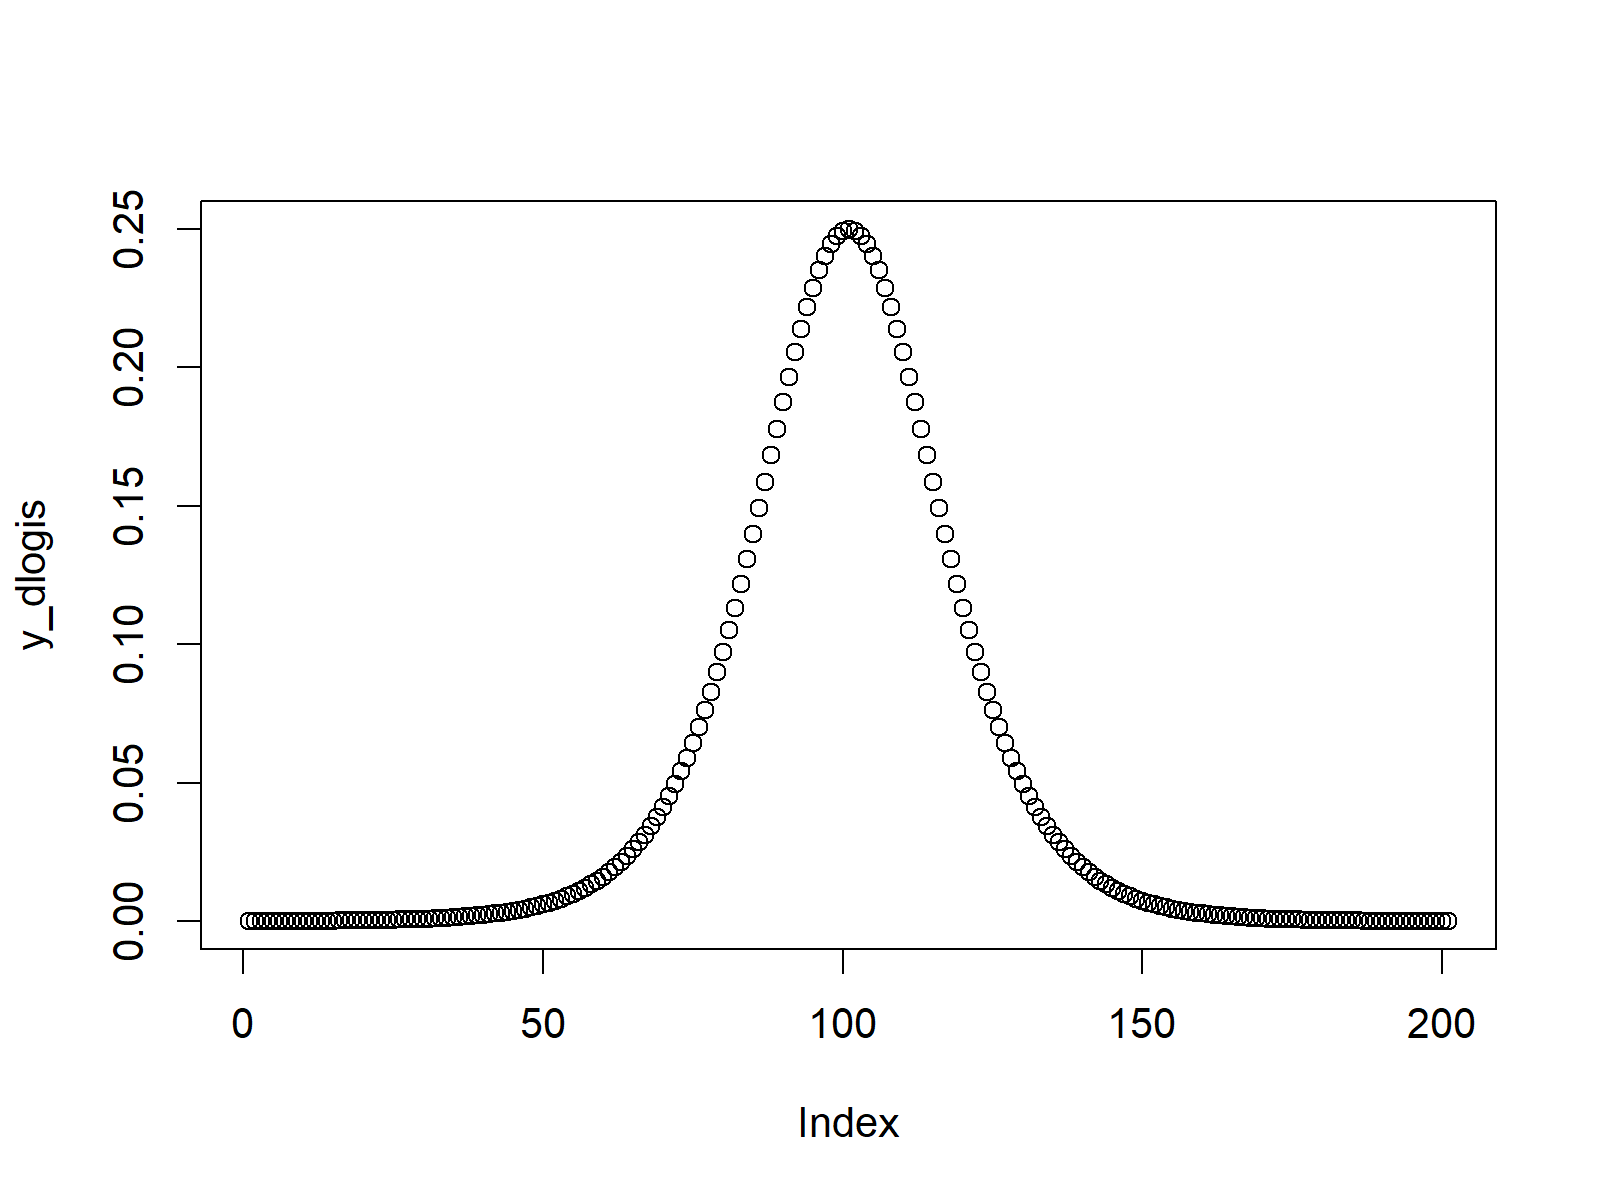 logistic probability density function